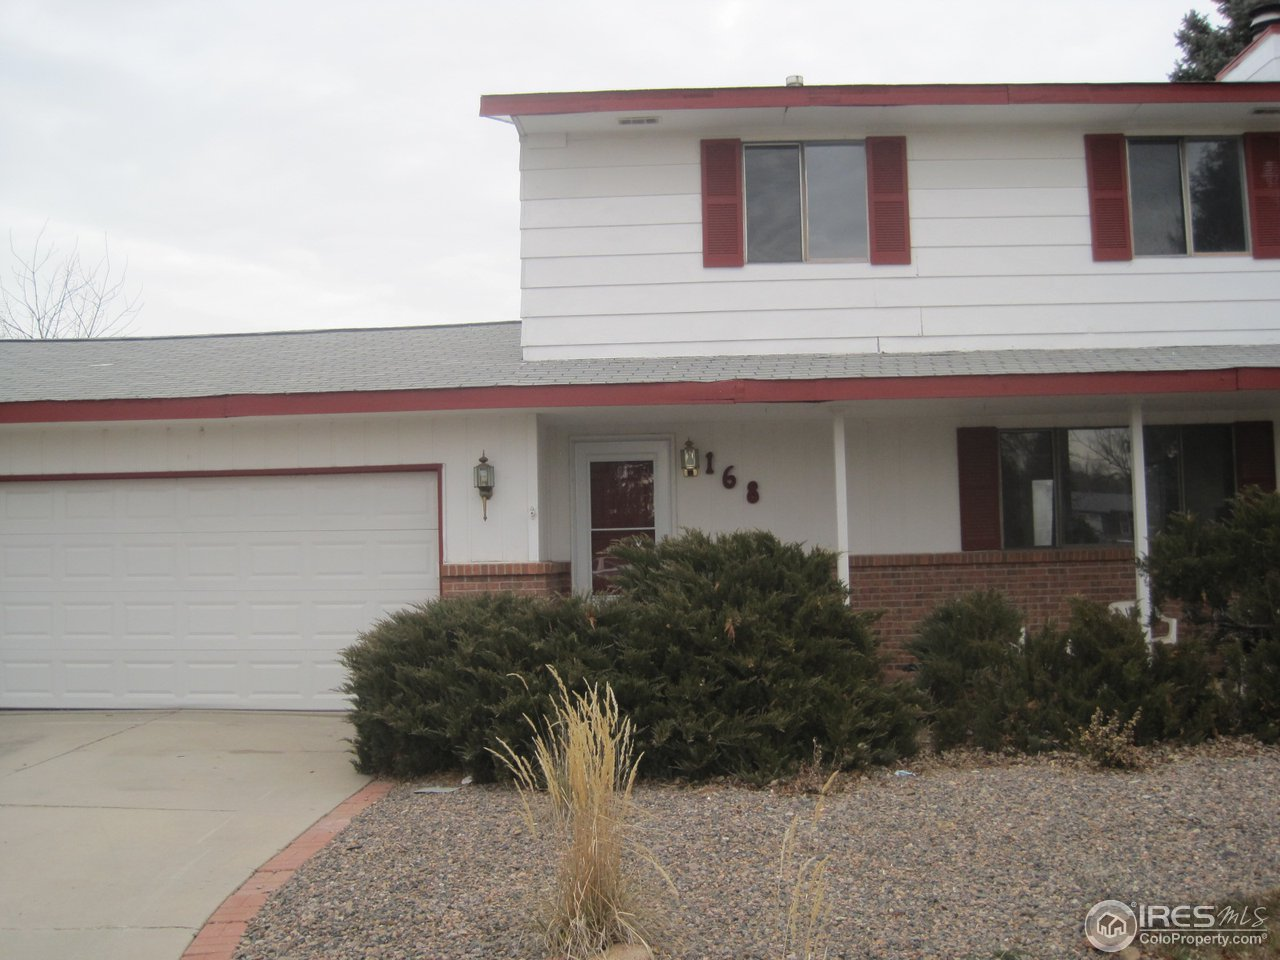 168 45th Ave Ct, Greeley CO 80634